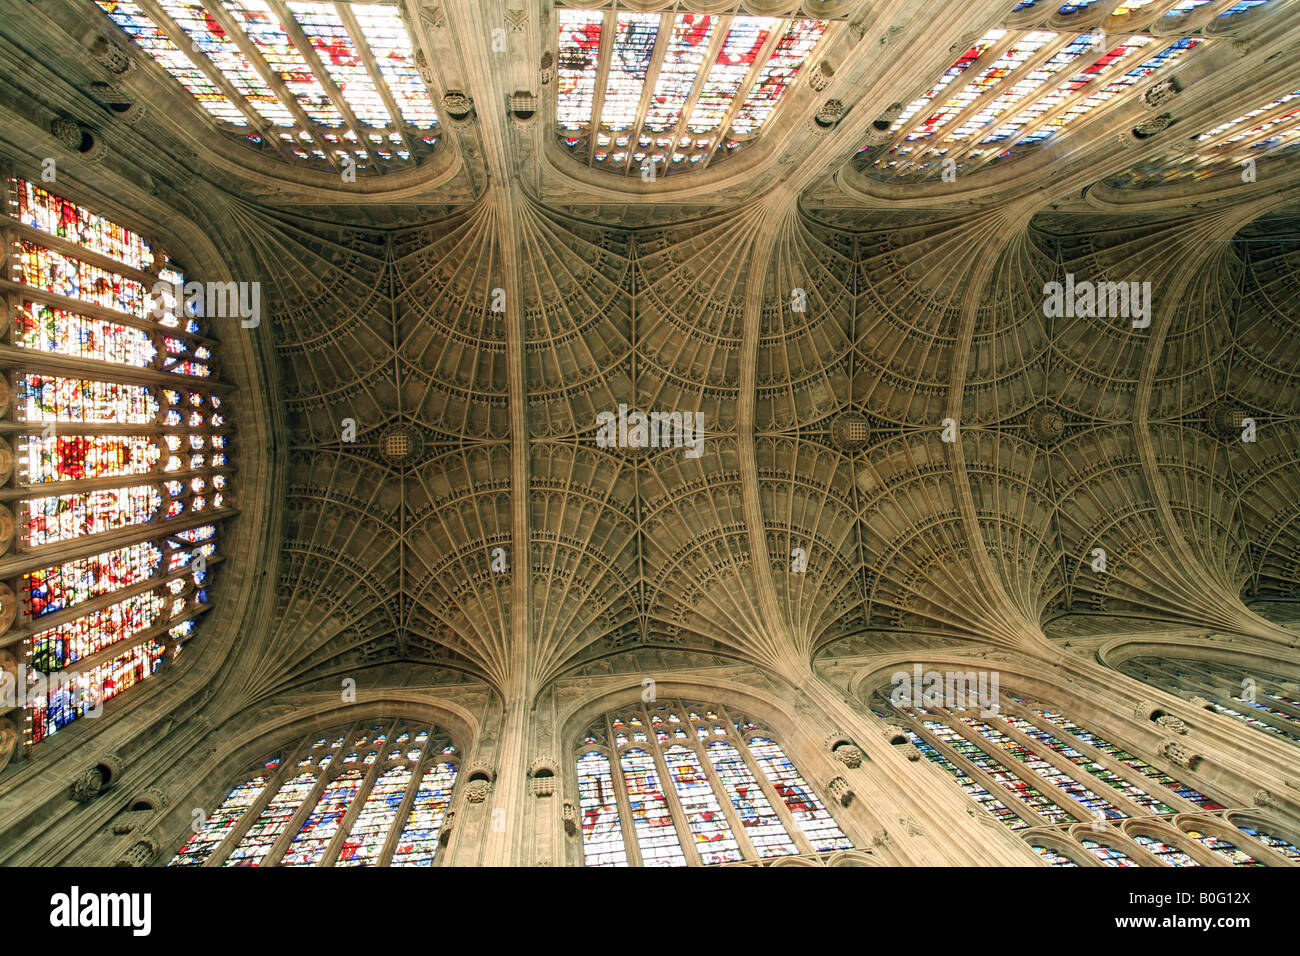 The ceiling, Kings College Chapel, Cambridge England Stock Photo